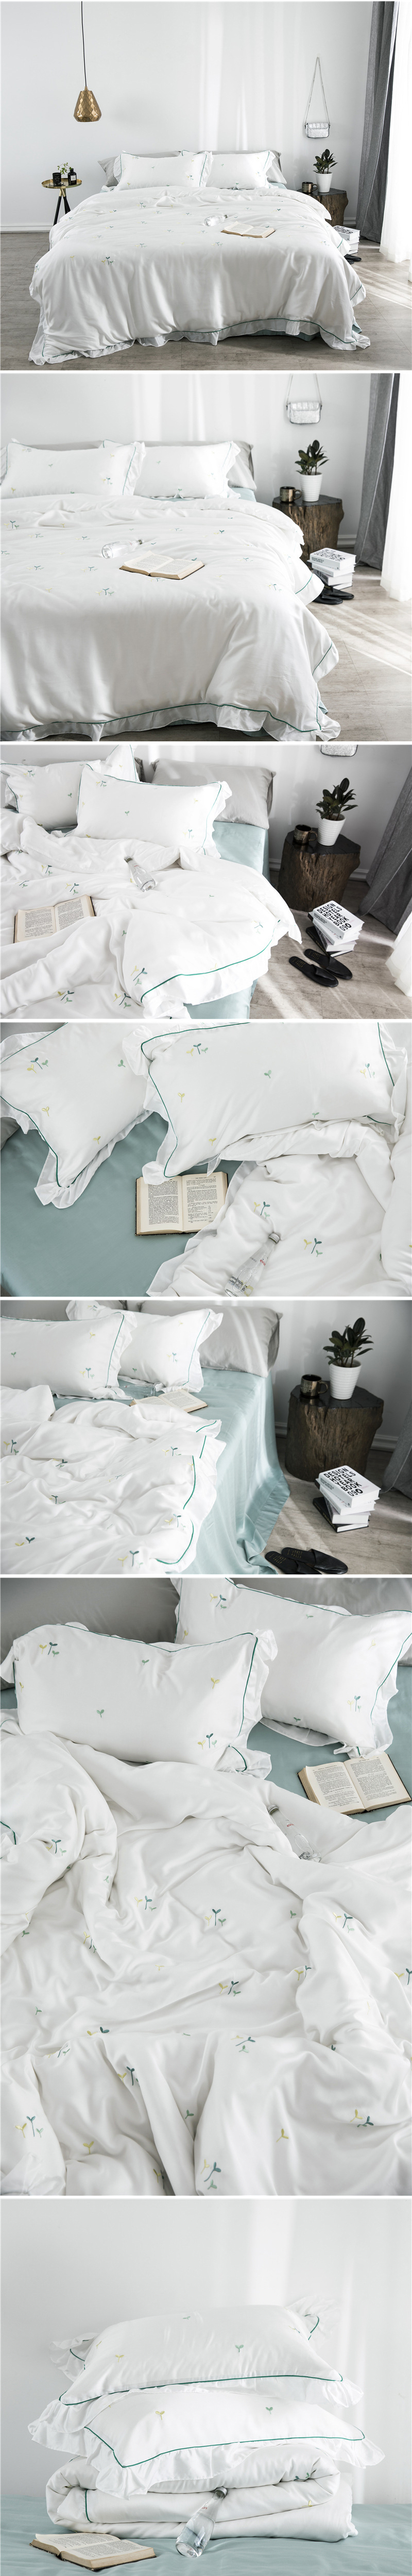 2018 comforter bedding sets 60s tencel coon coon bed sheets small fresh embroidery wedding bed cover housse de couee 2